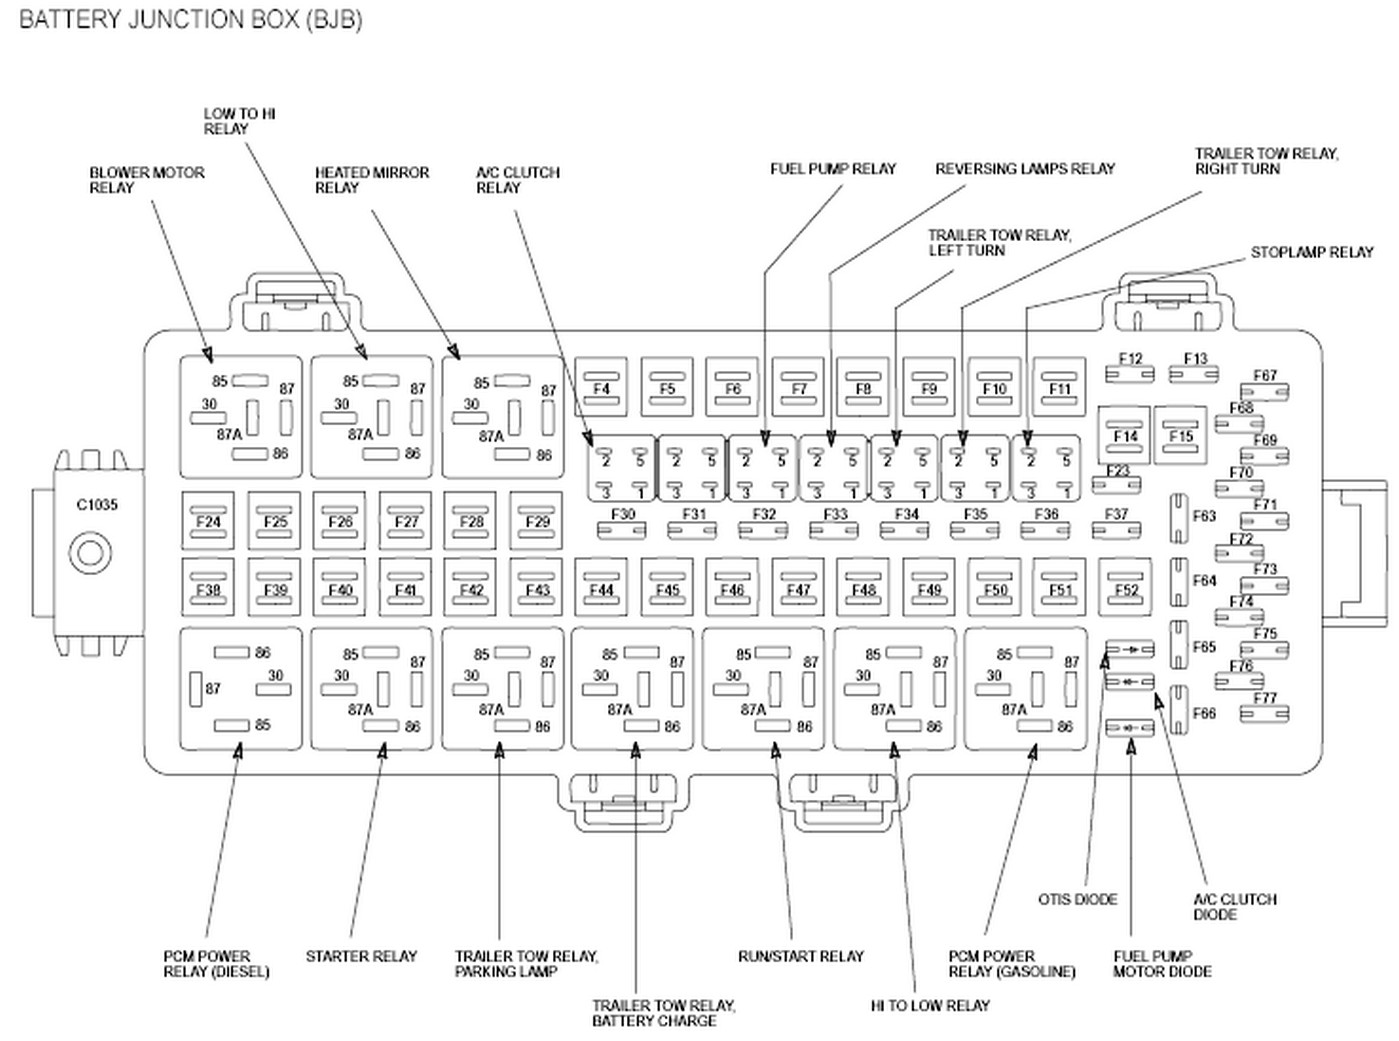 2010 F650 Fuse Diagram Wiring Libraries Headlight F250 Simple Post2007 Box Todays 1997